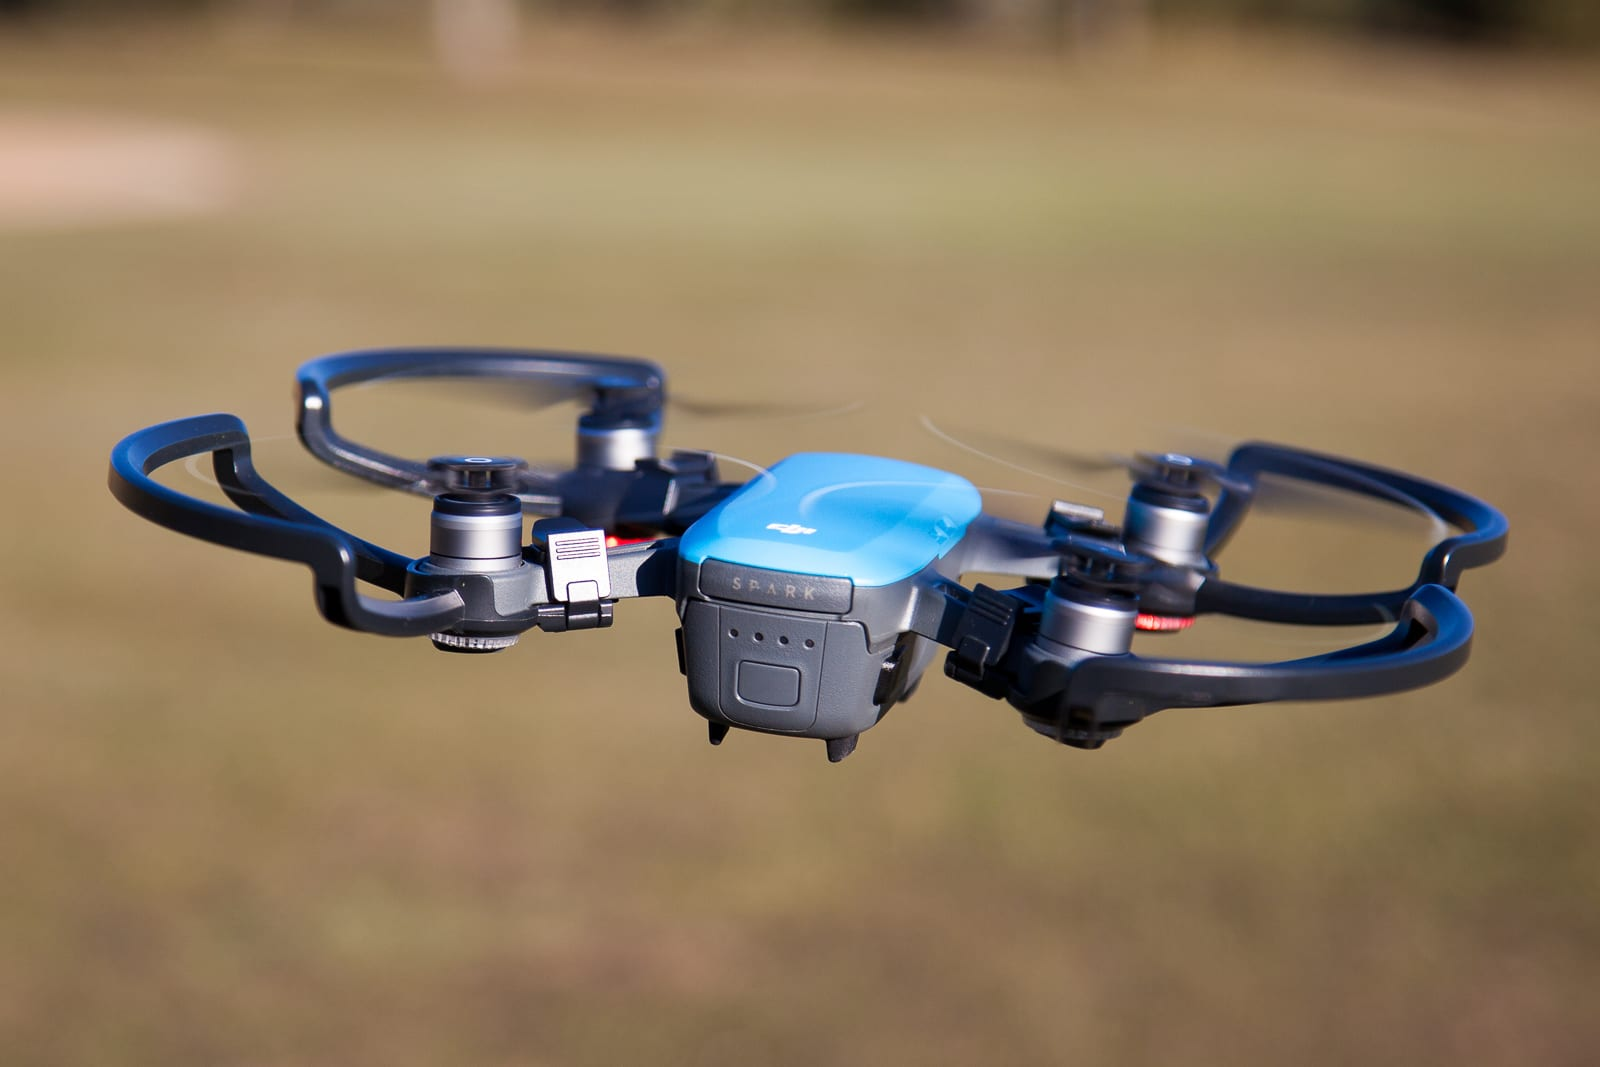 Drones for photo and video